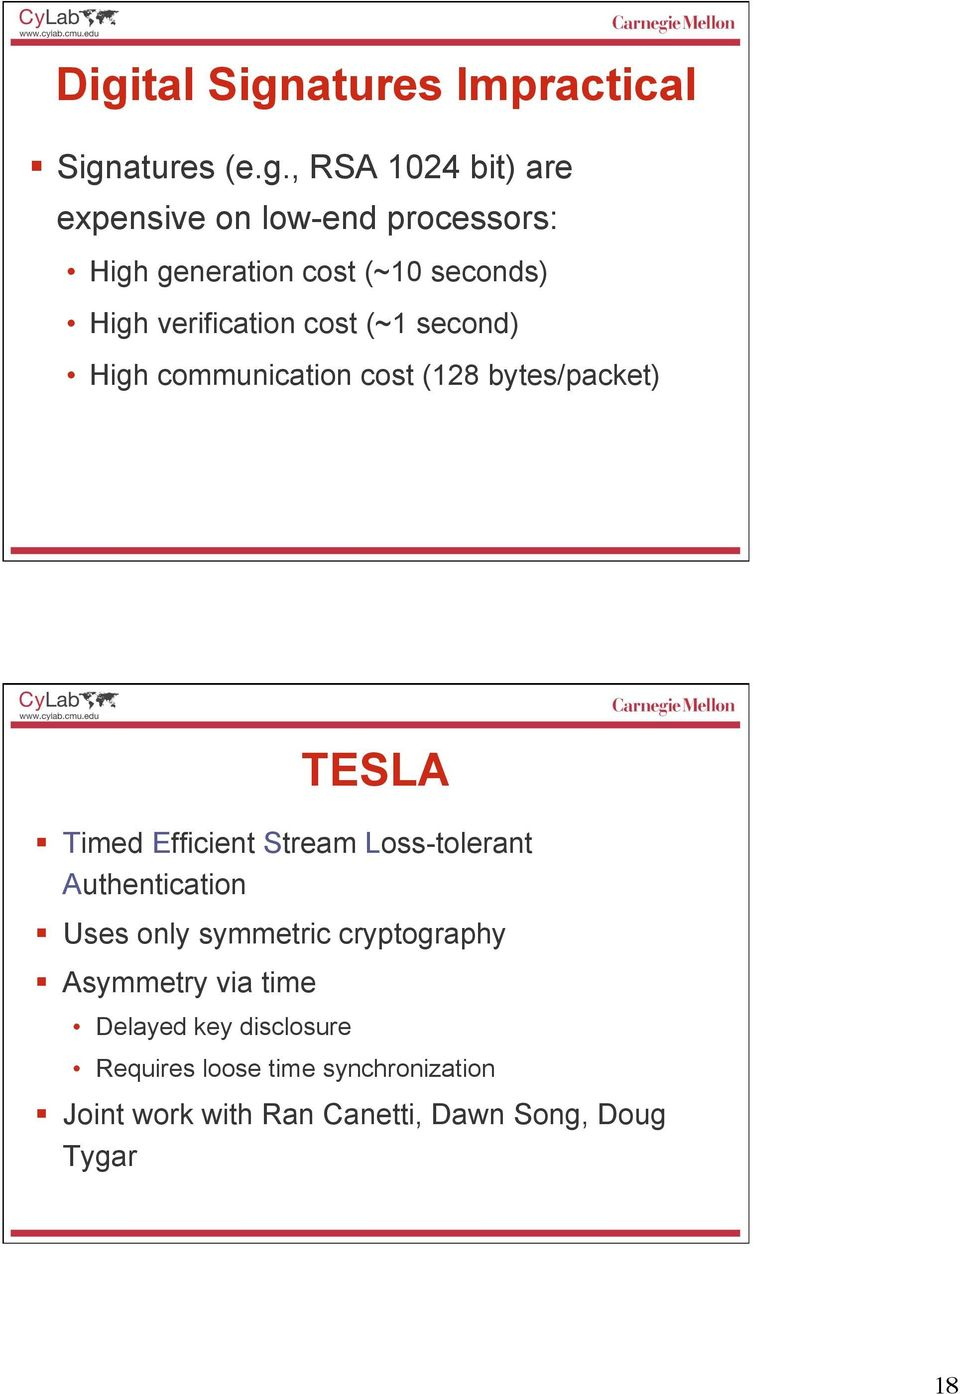 TESLA Timed Efficient Stream Loss-tolerant Authentication Uses only symmetric cryptography Asymmetry via